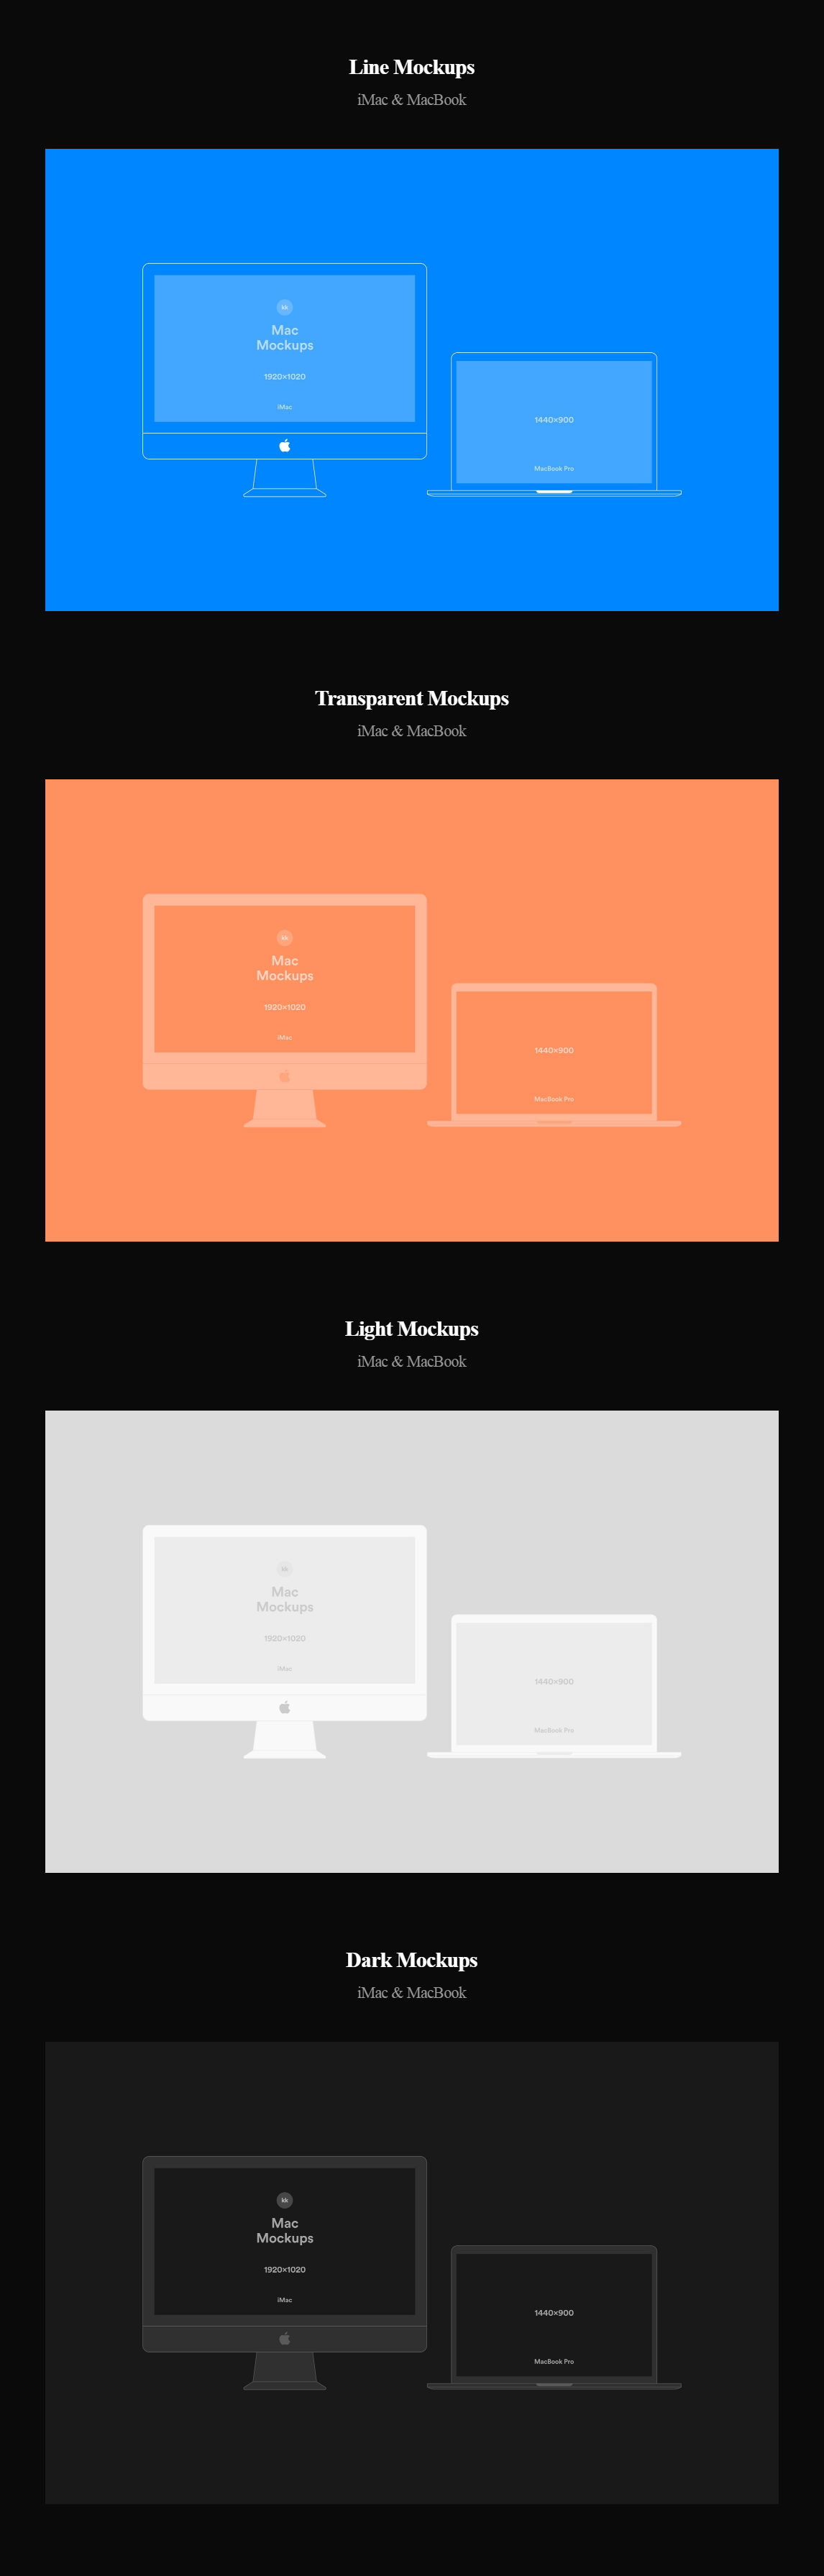 Free iMac and MacBook Vector Mockups